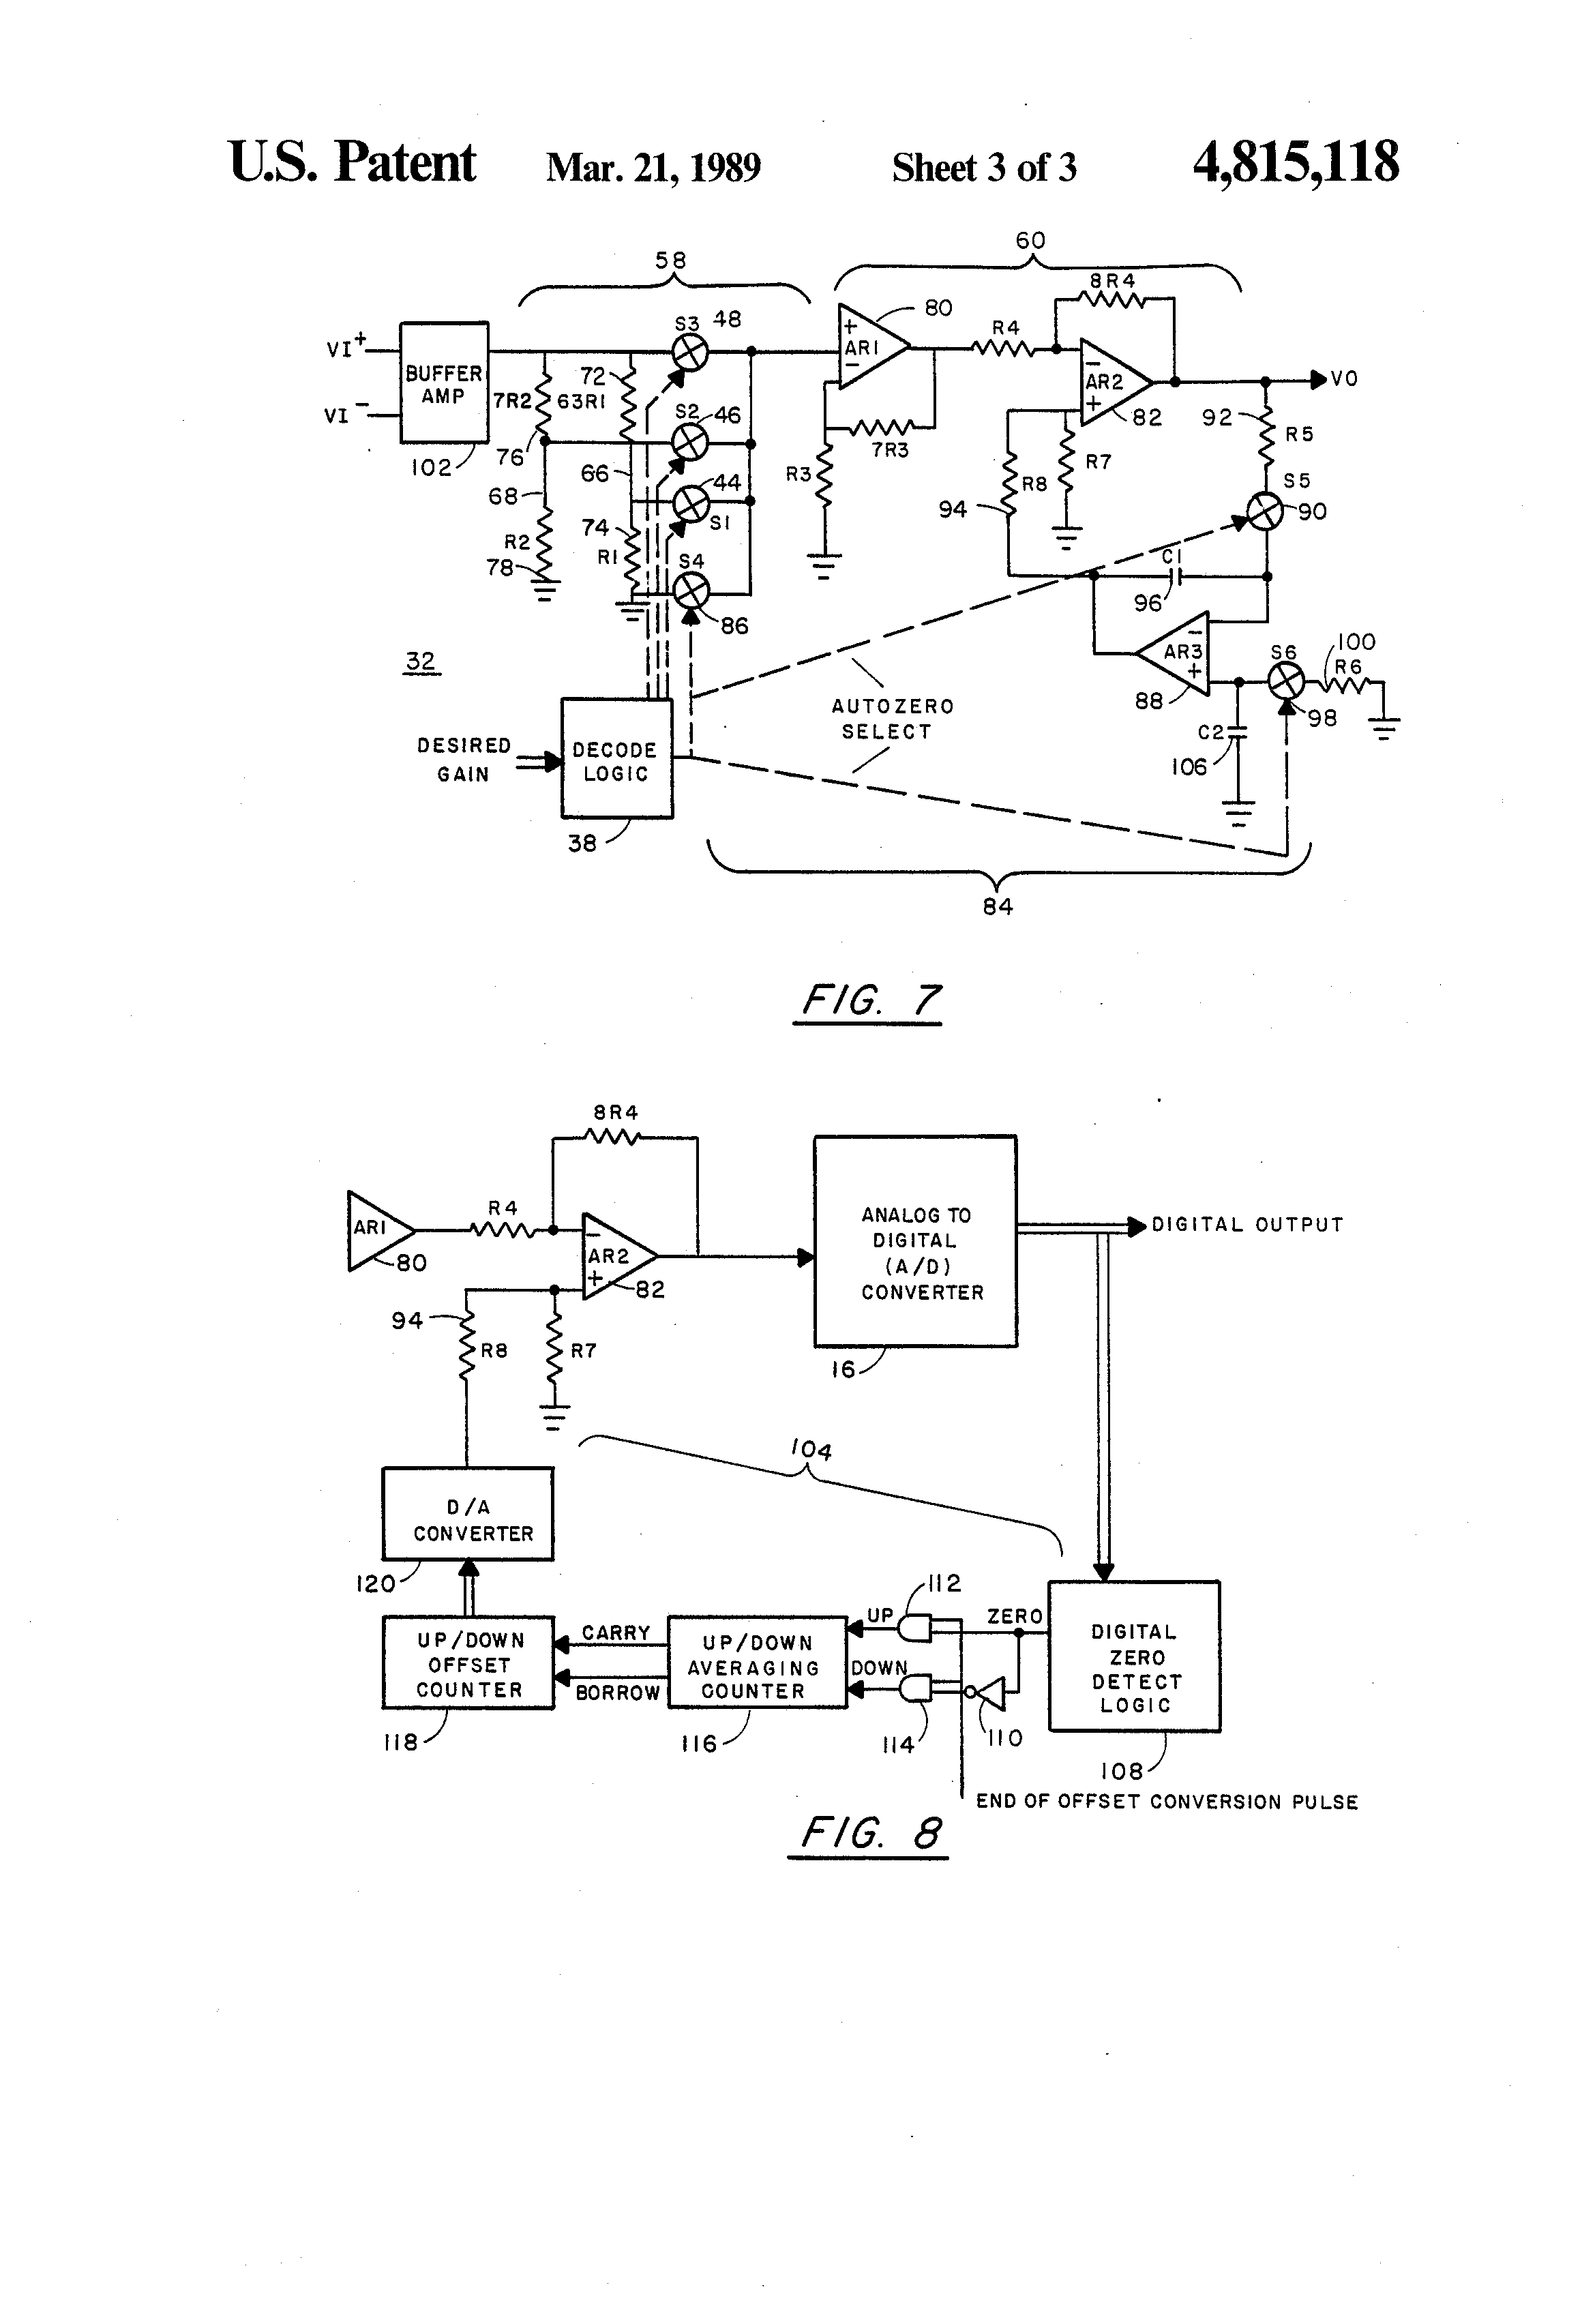 Ct Data Acquisition System : Patent us data converter for ct acquisition